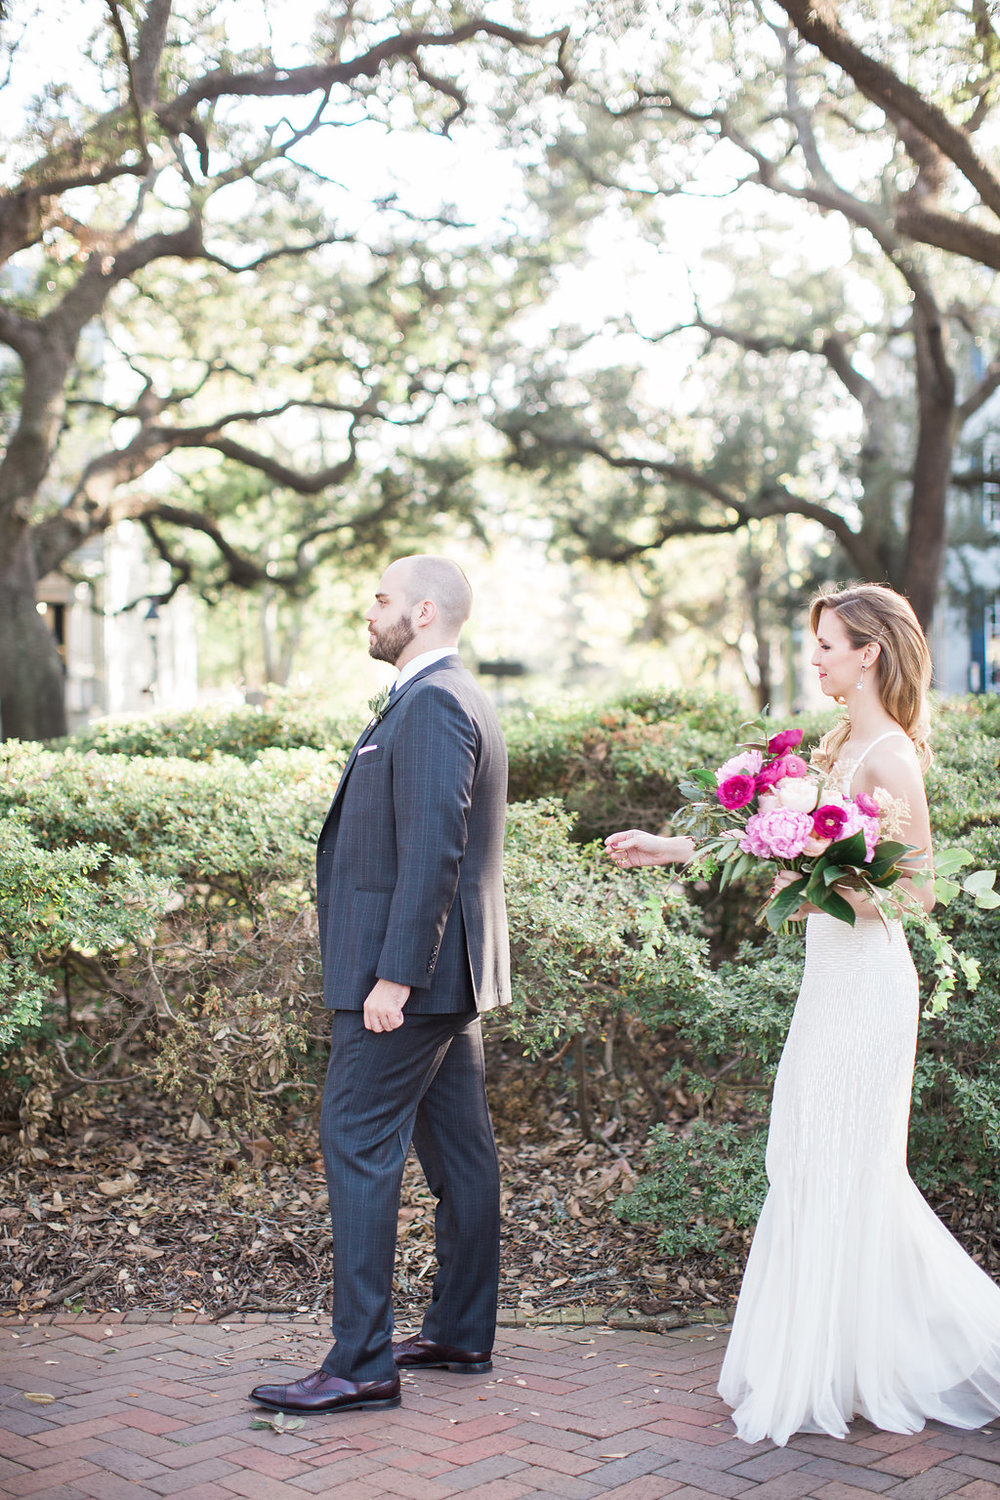 helen-tom-apt-b-photography-savannah-weddings-ivory-and-beau-bridal-boutique-savannah-bridal-boutique-savannah-florist-georgia-state-railroad-museum-wedding-colorful-rustic-wedding-savannah-florist-7.JPG